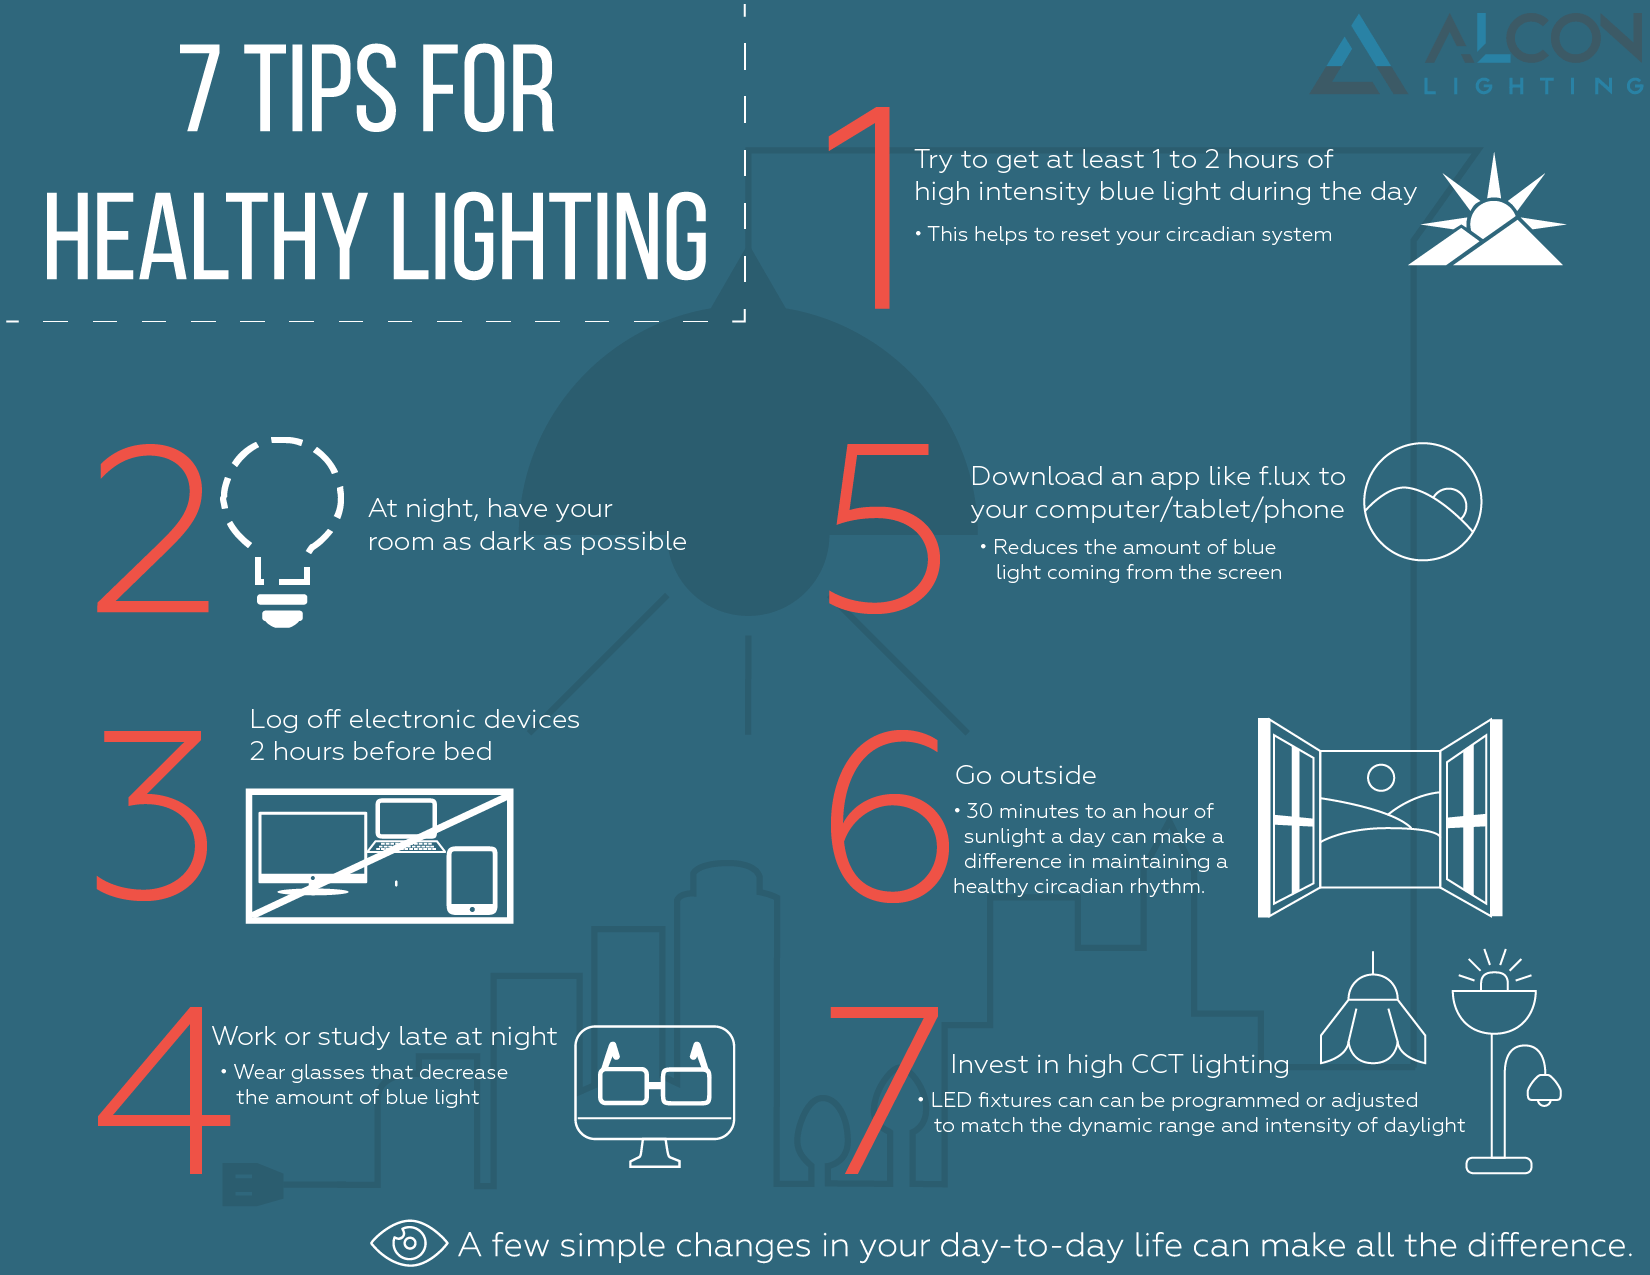 Led Lights Bad Health 7 Tips For Healthy Lighting From Light And Health Researcher